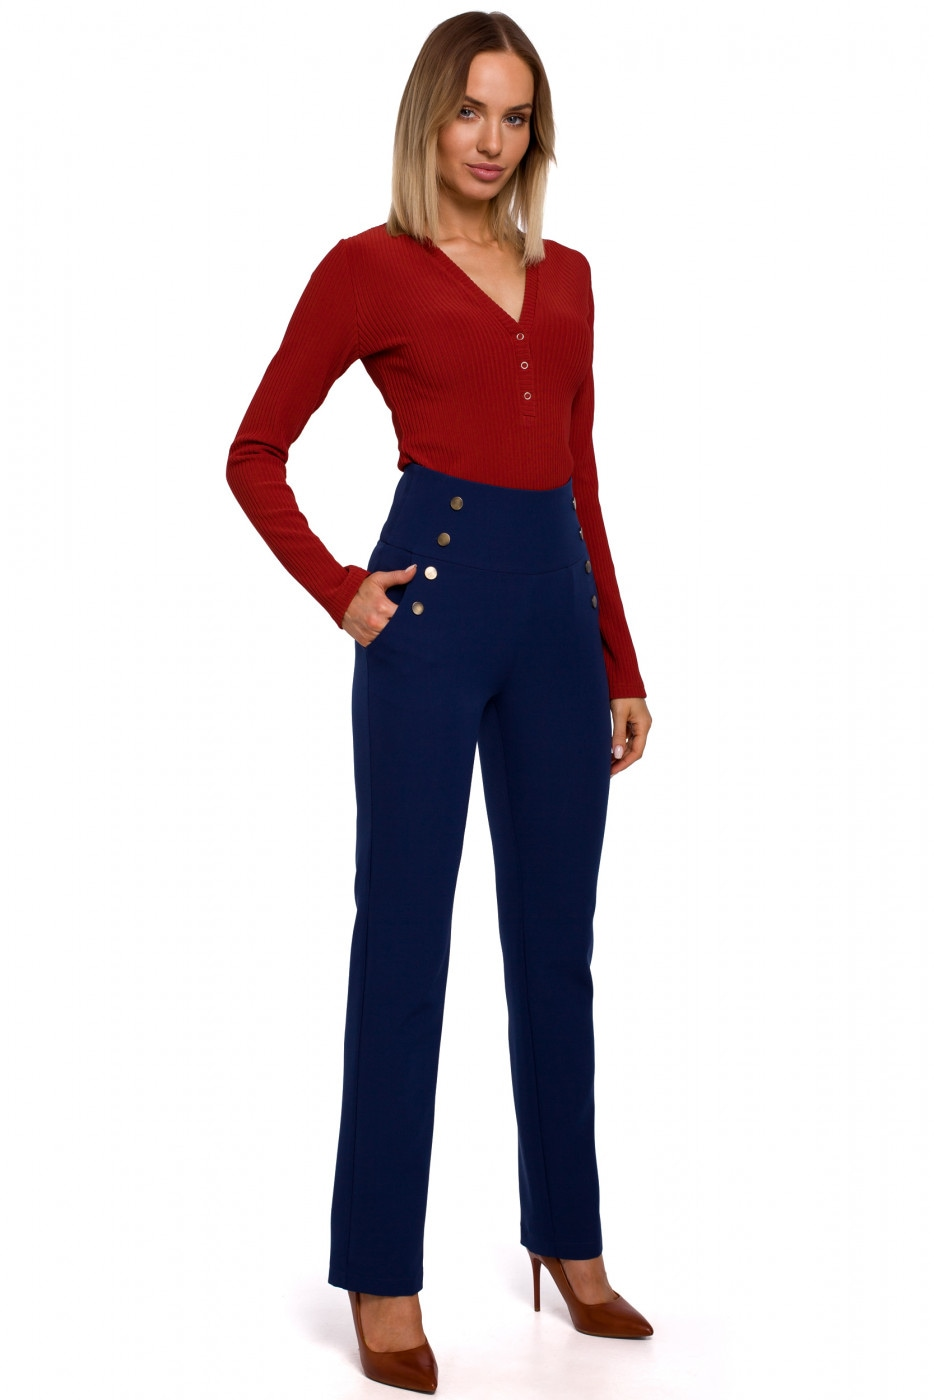 Made Of Emotion Woman's Trousers M530 Navy Blue